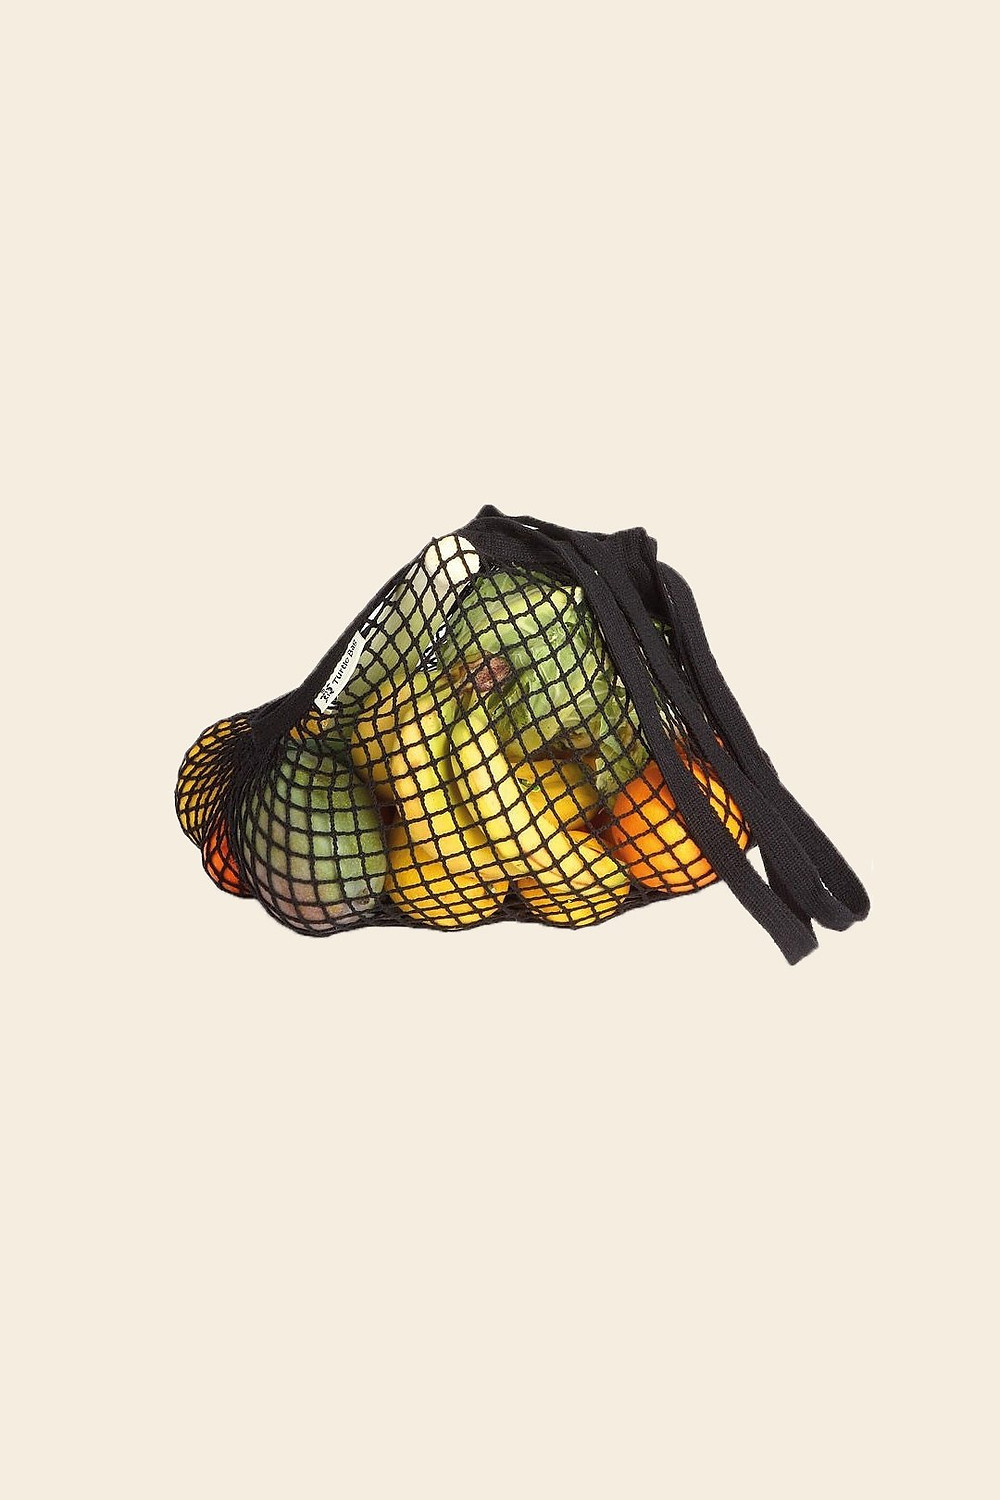 A fishnet bag full of vegetables and fruit